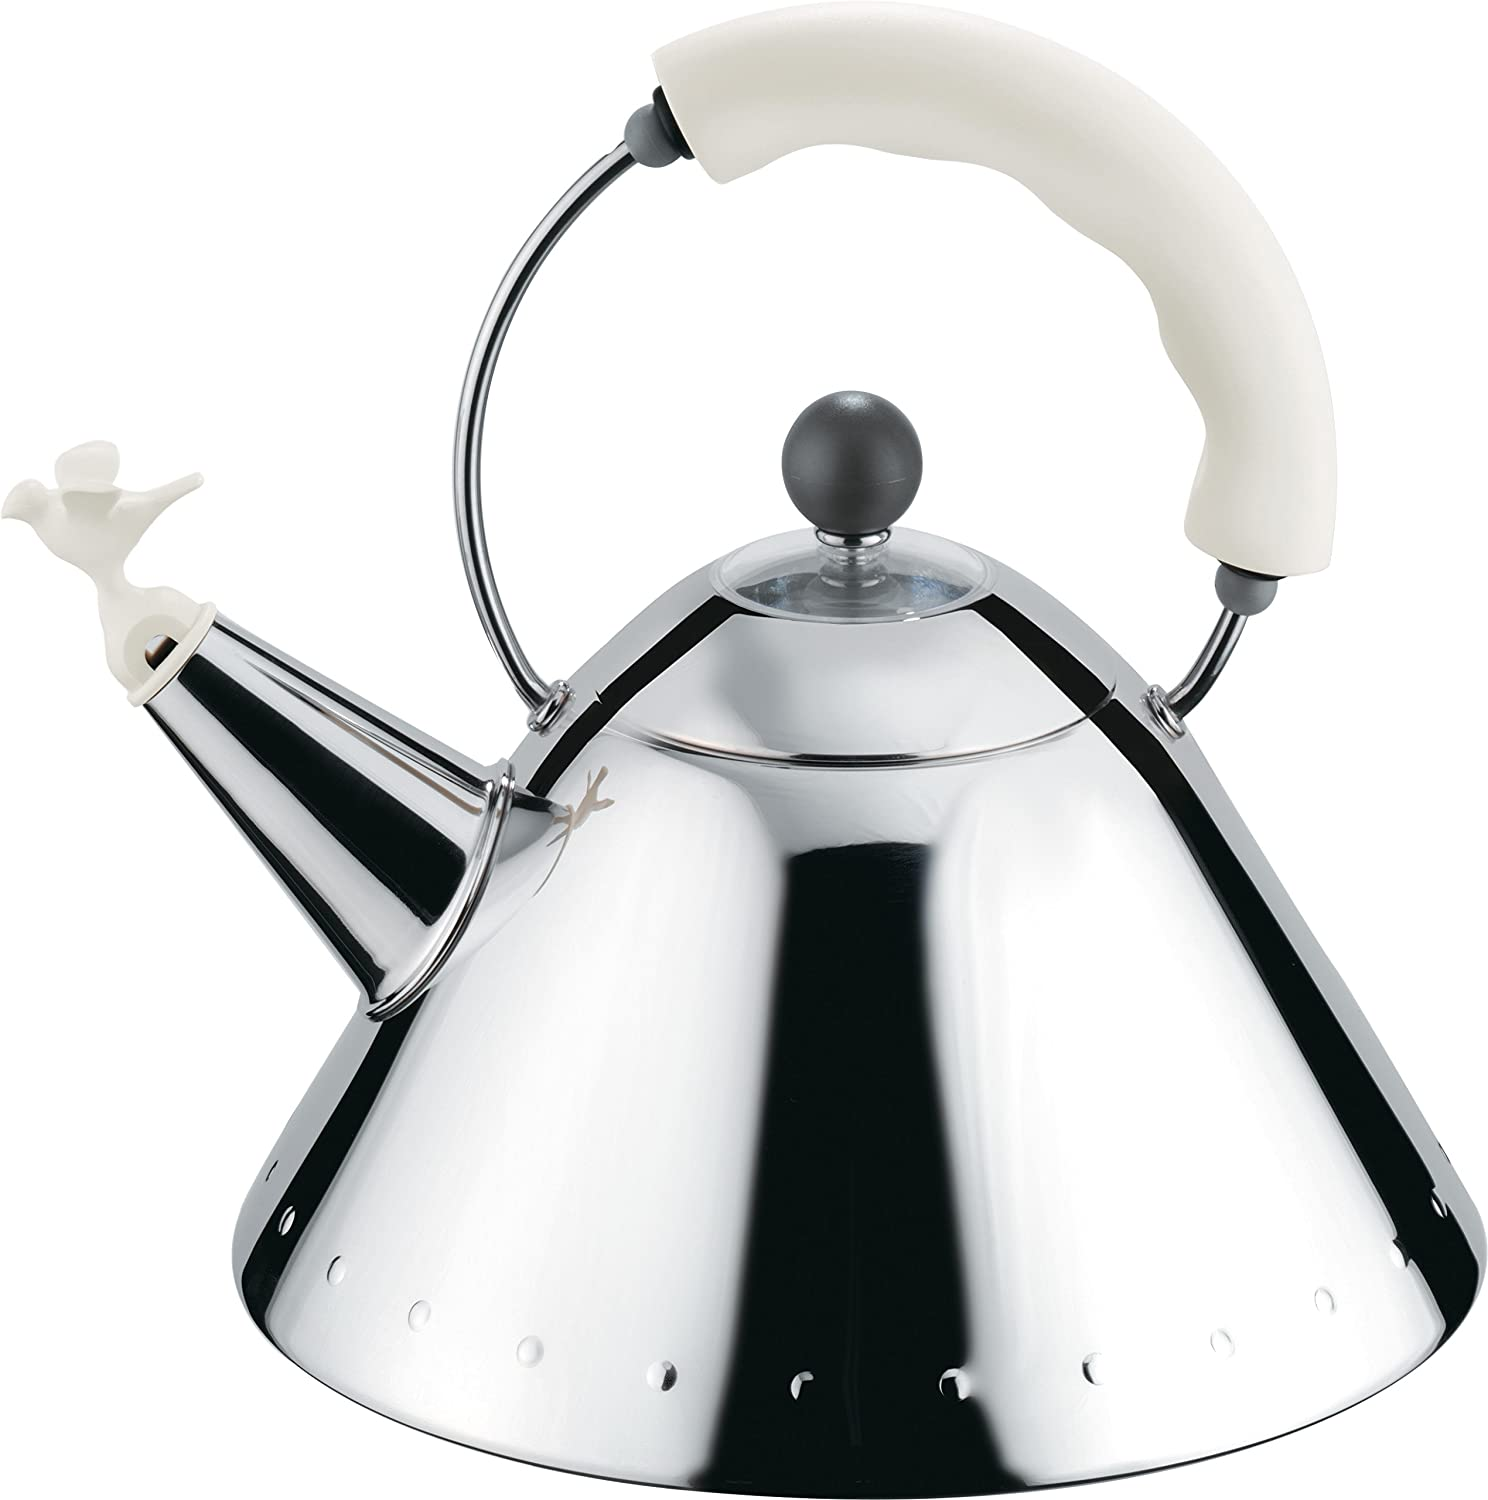 Alessi Blue Bird Whistle Hob Kettle Michael Graves 9093 alessi bird alessi bird kettle